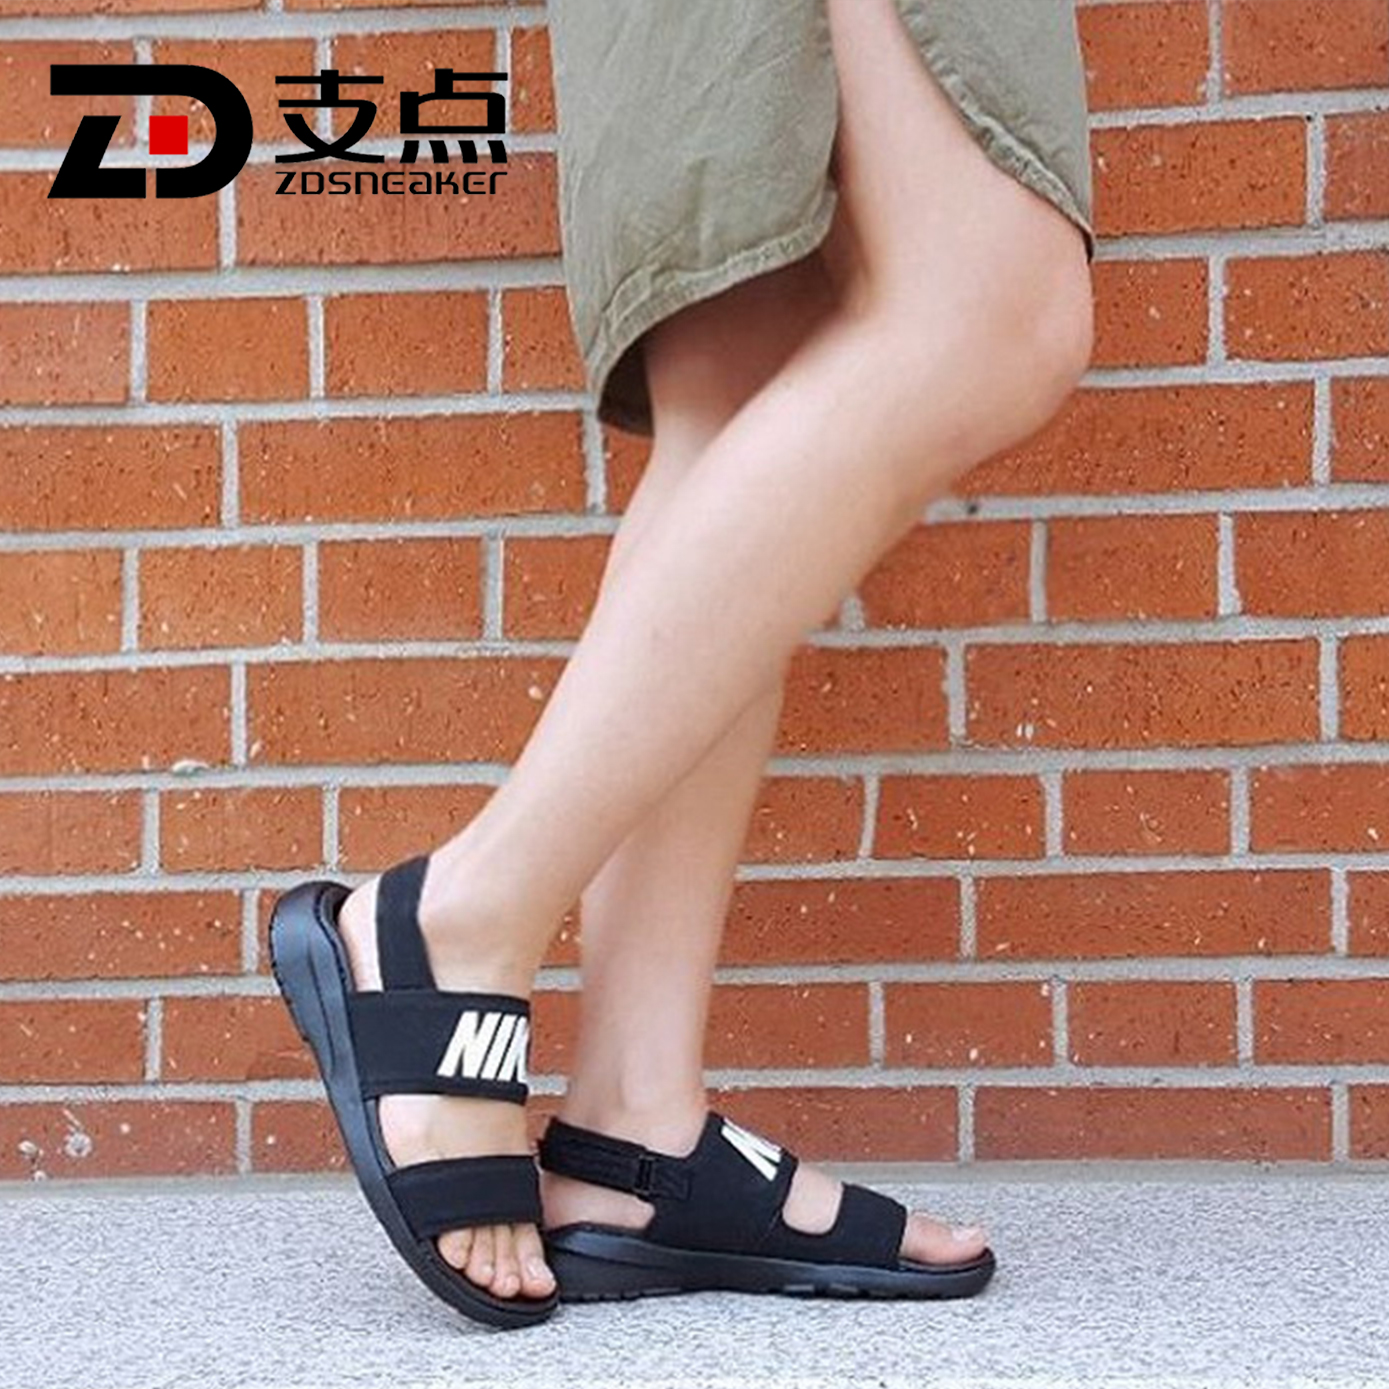 01c21c386062 ... NIKE TANJUN SANDAL Letter Ninja Couple Casual Beach Sandals  882694-001 002